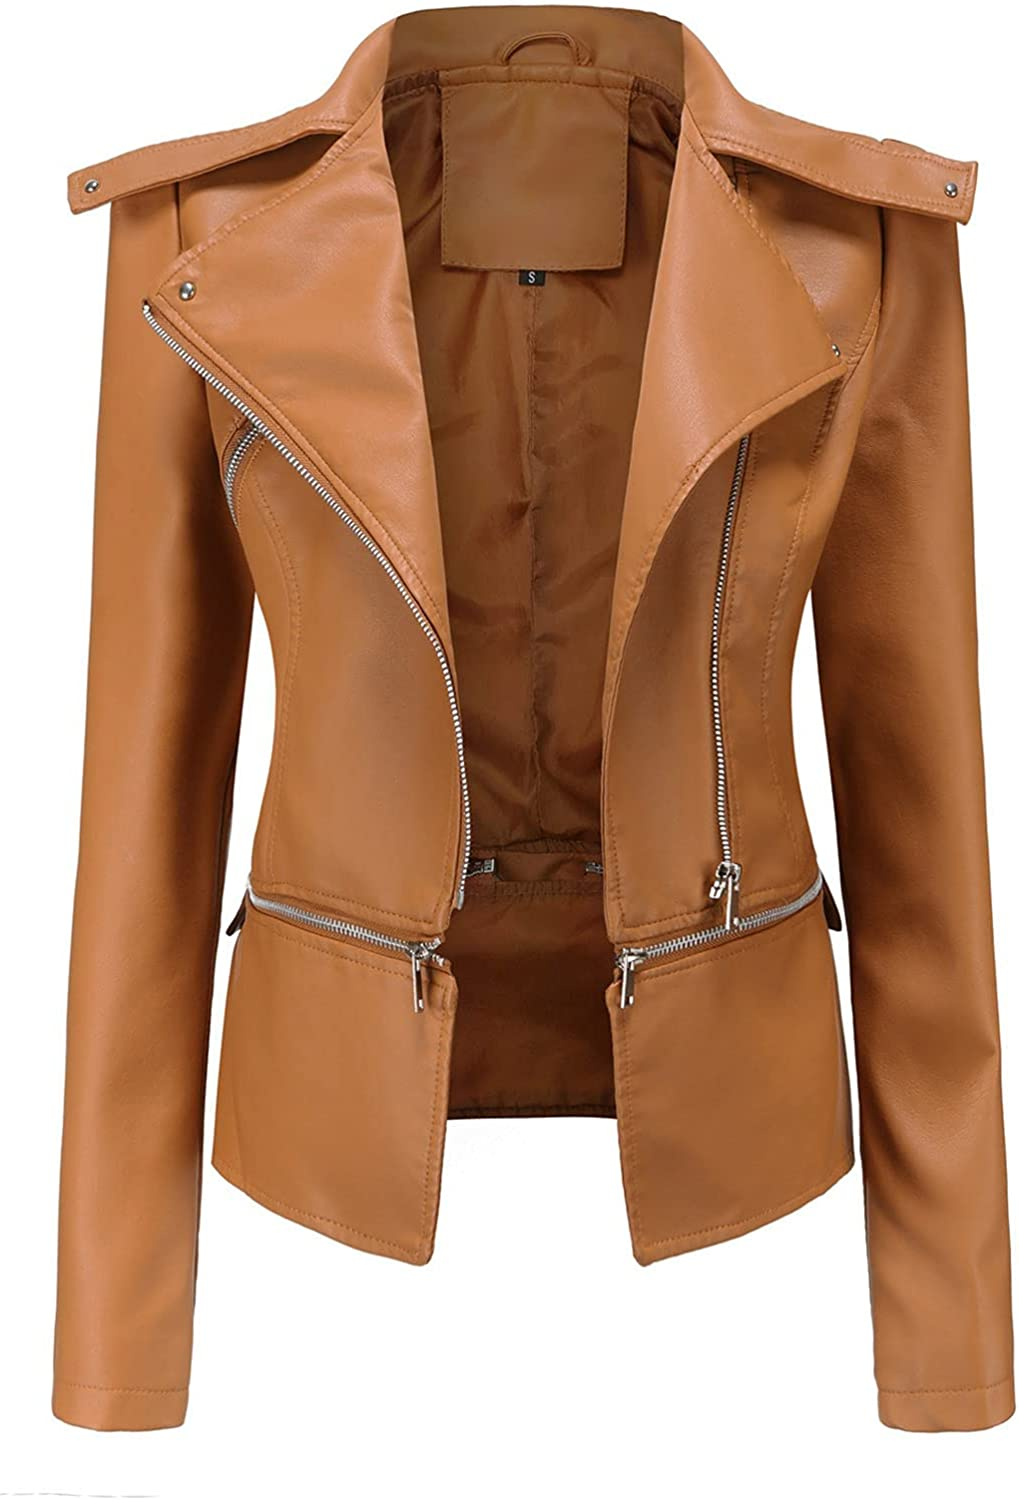 RFNIU Womens Zip Up Faux Leather Jacket Fall And Winter Fashion Motorcycle Lapel Coat Casual Slim Long Sleeve Tops